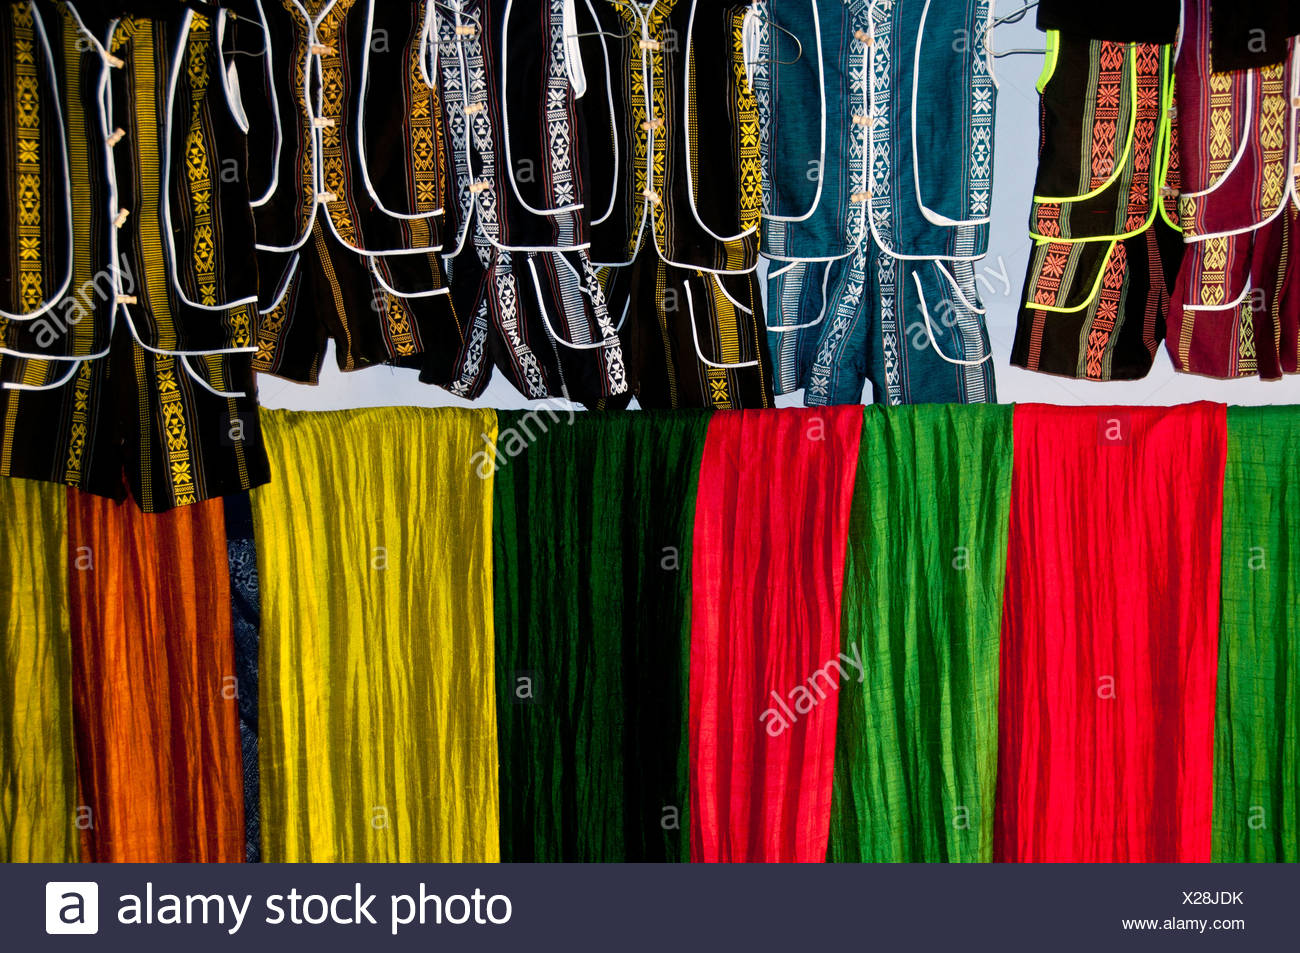 colorful, fabric, clothing, store, Sapa, Vietnam, Asia, textiles - Stock Image